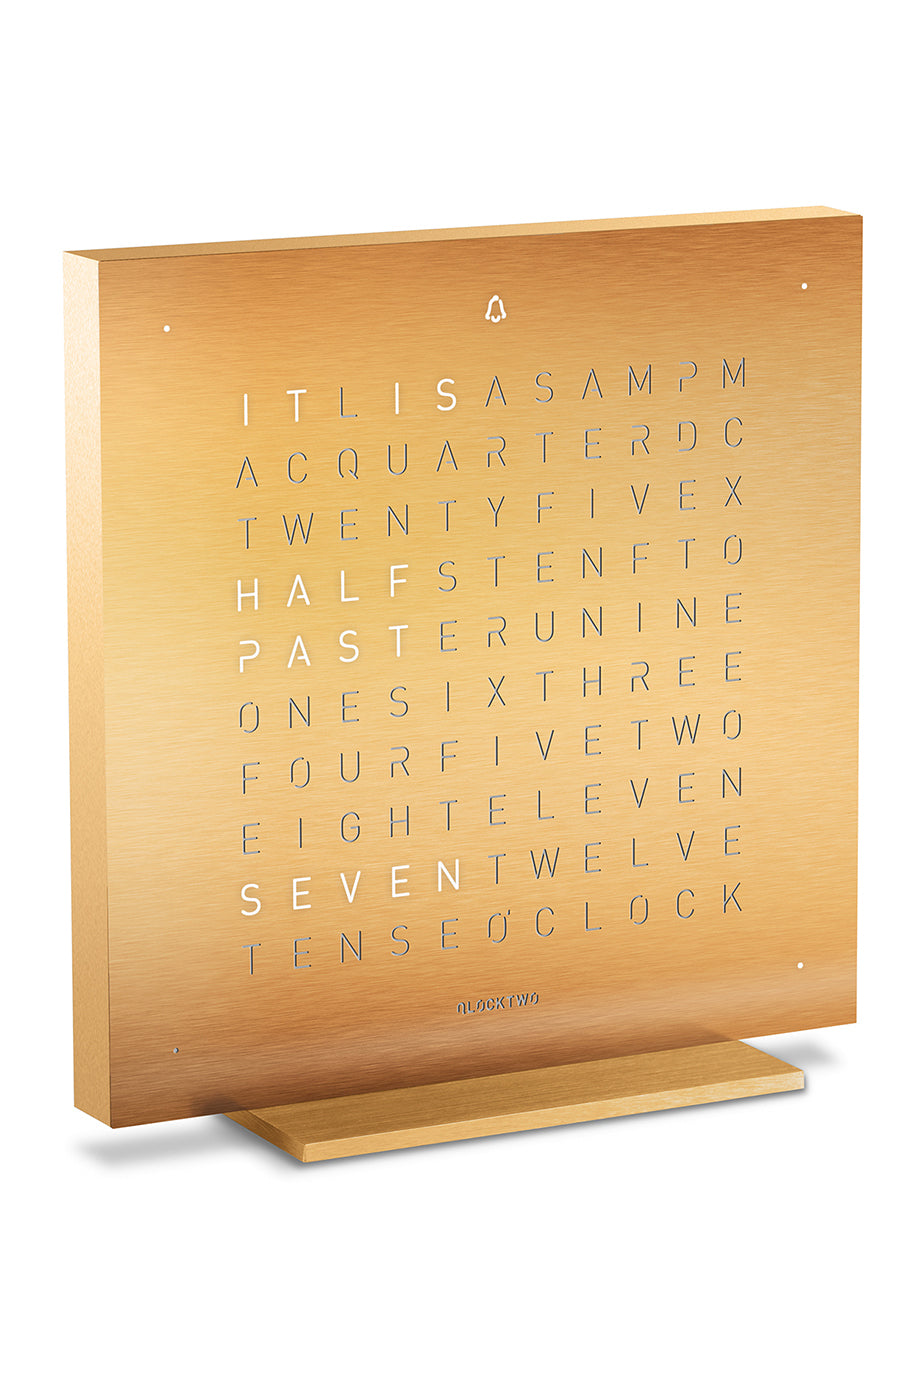 QLOCKTWO TOUCH Creator's Edition Aluminium Desk Clock with GOLDEN LEGEND Faceplate